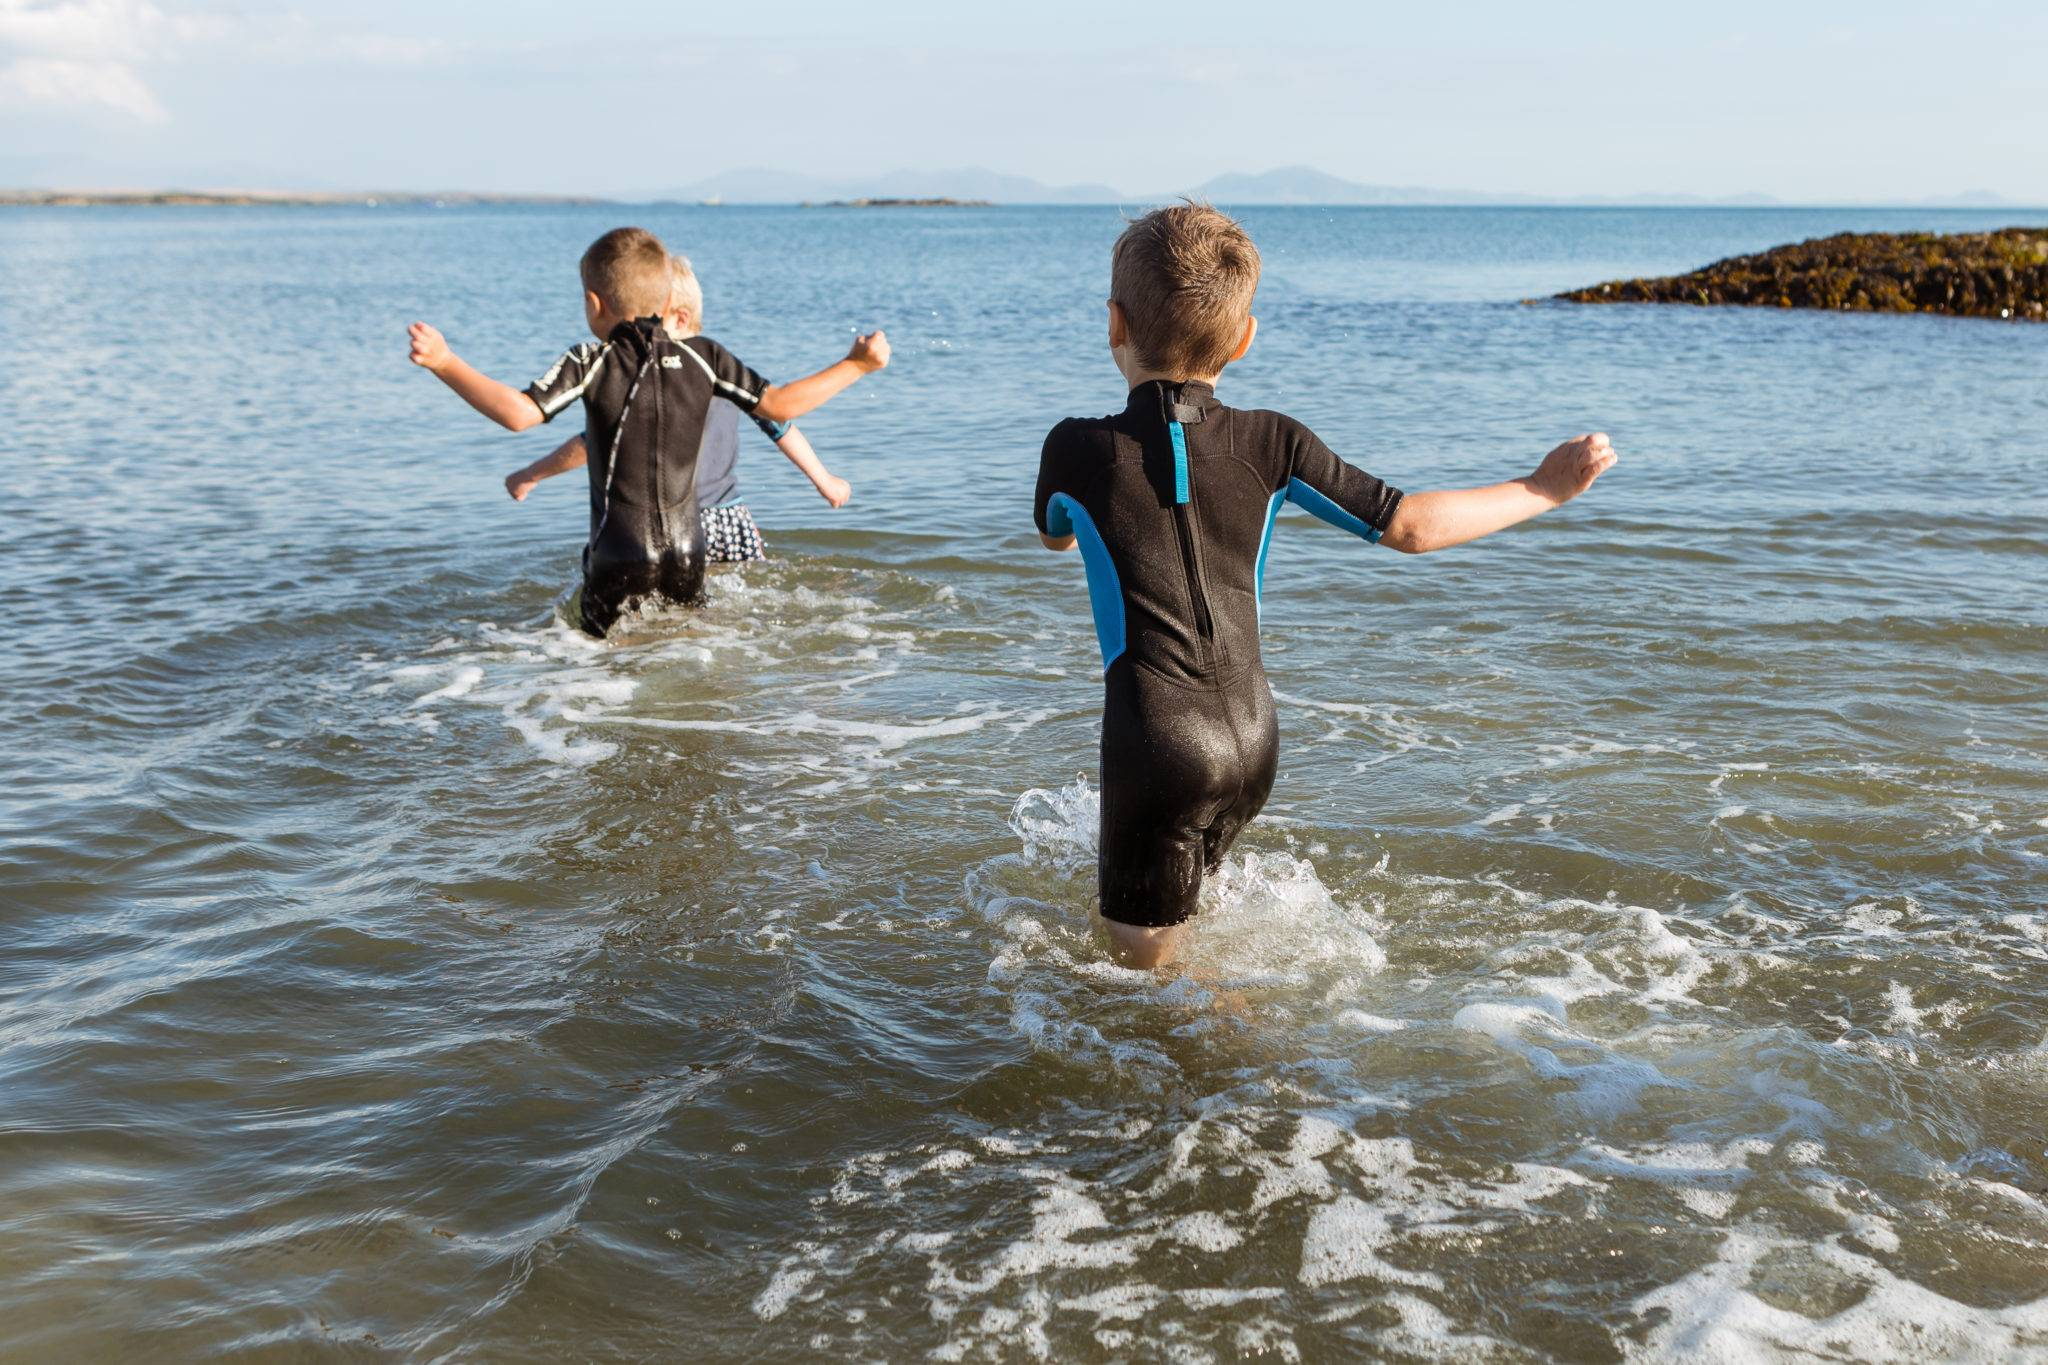 http://silverbay.co.uk/wp-content/uploads/2015/09/silver-bay-holiday-village-anglesey-playing-ocean-children.jpg